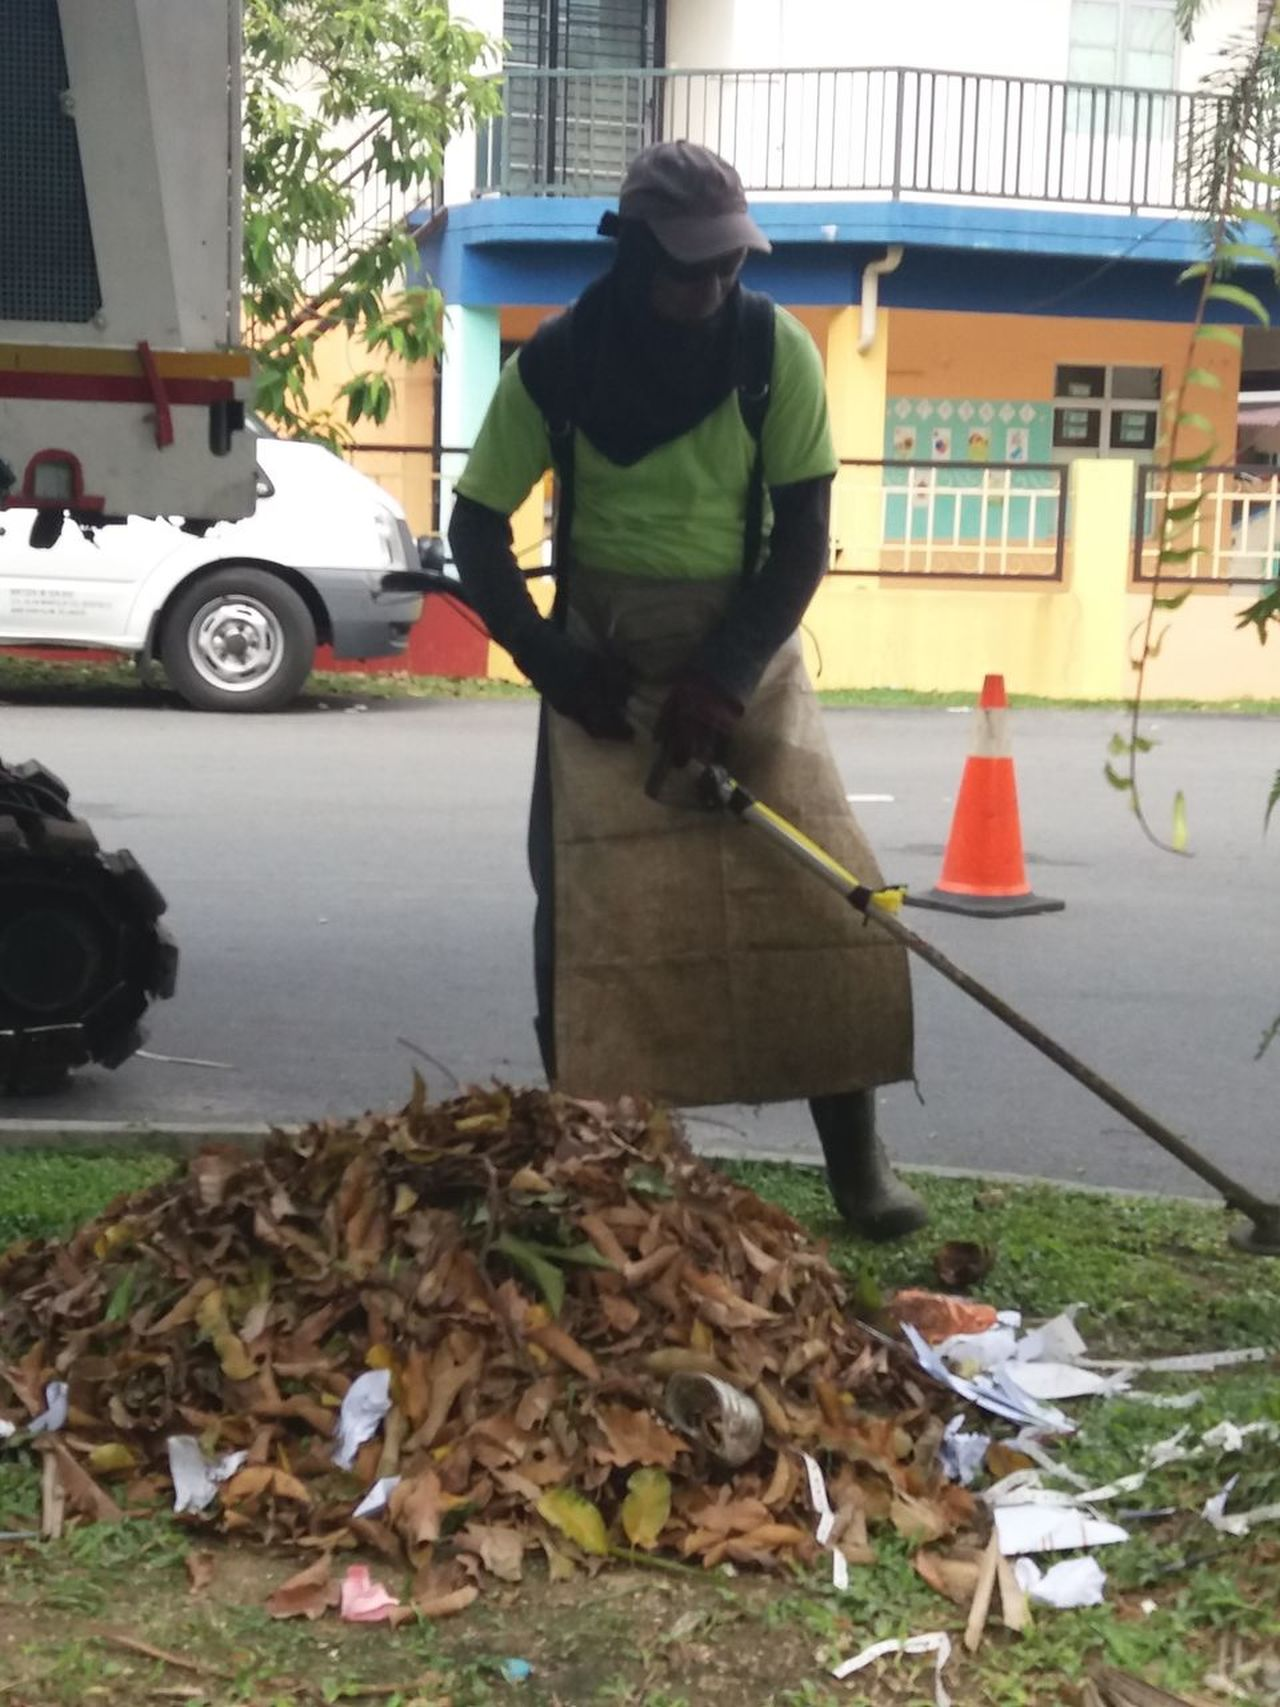 Grass cutter 1 Working Occupation Cleaning Washing Only Men Manual Worker Adult Protective Workwear One Man Only People One Person Adults Only Men Day Cleaner Responsibility Outdoors Real People Cleaning Equipment Volunteer